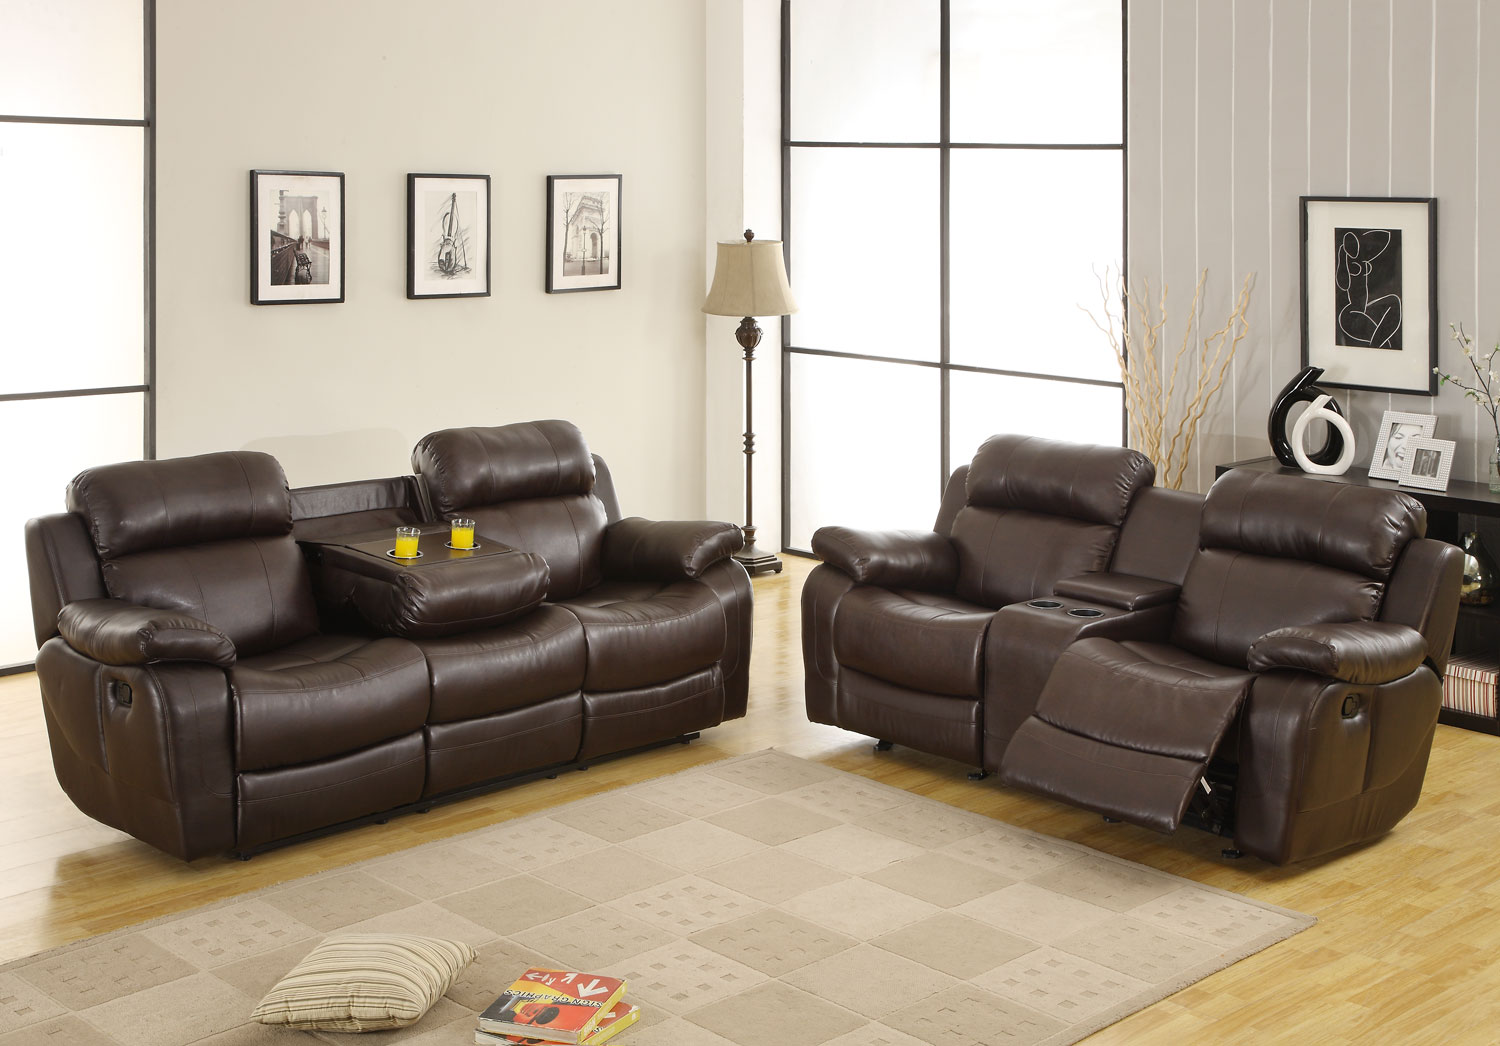 Homelegance Marille Reclining Sofa Set - Dark Brown - Bonded Leather Match